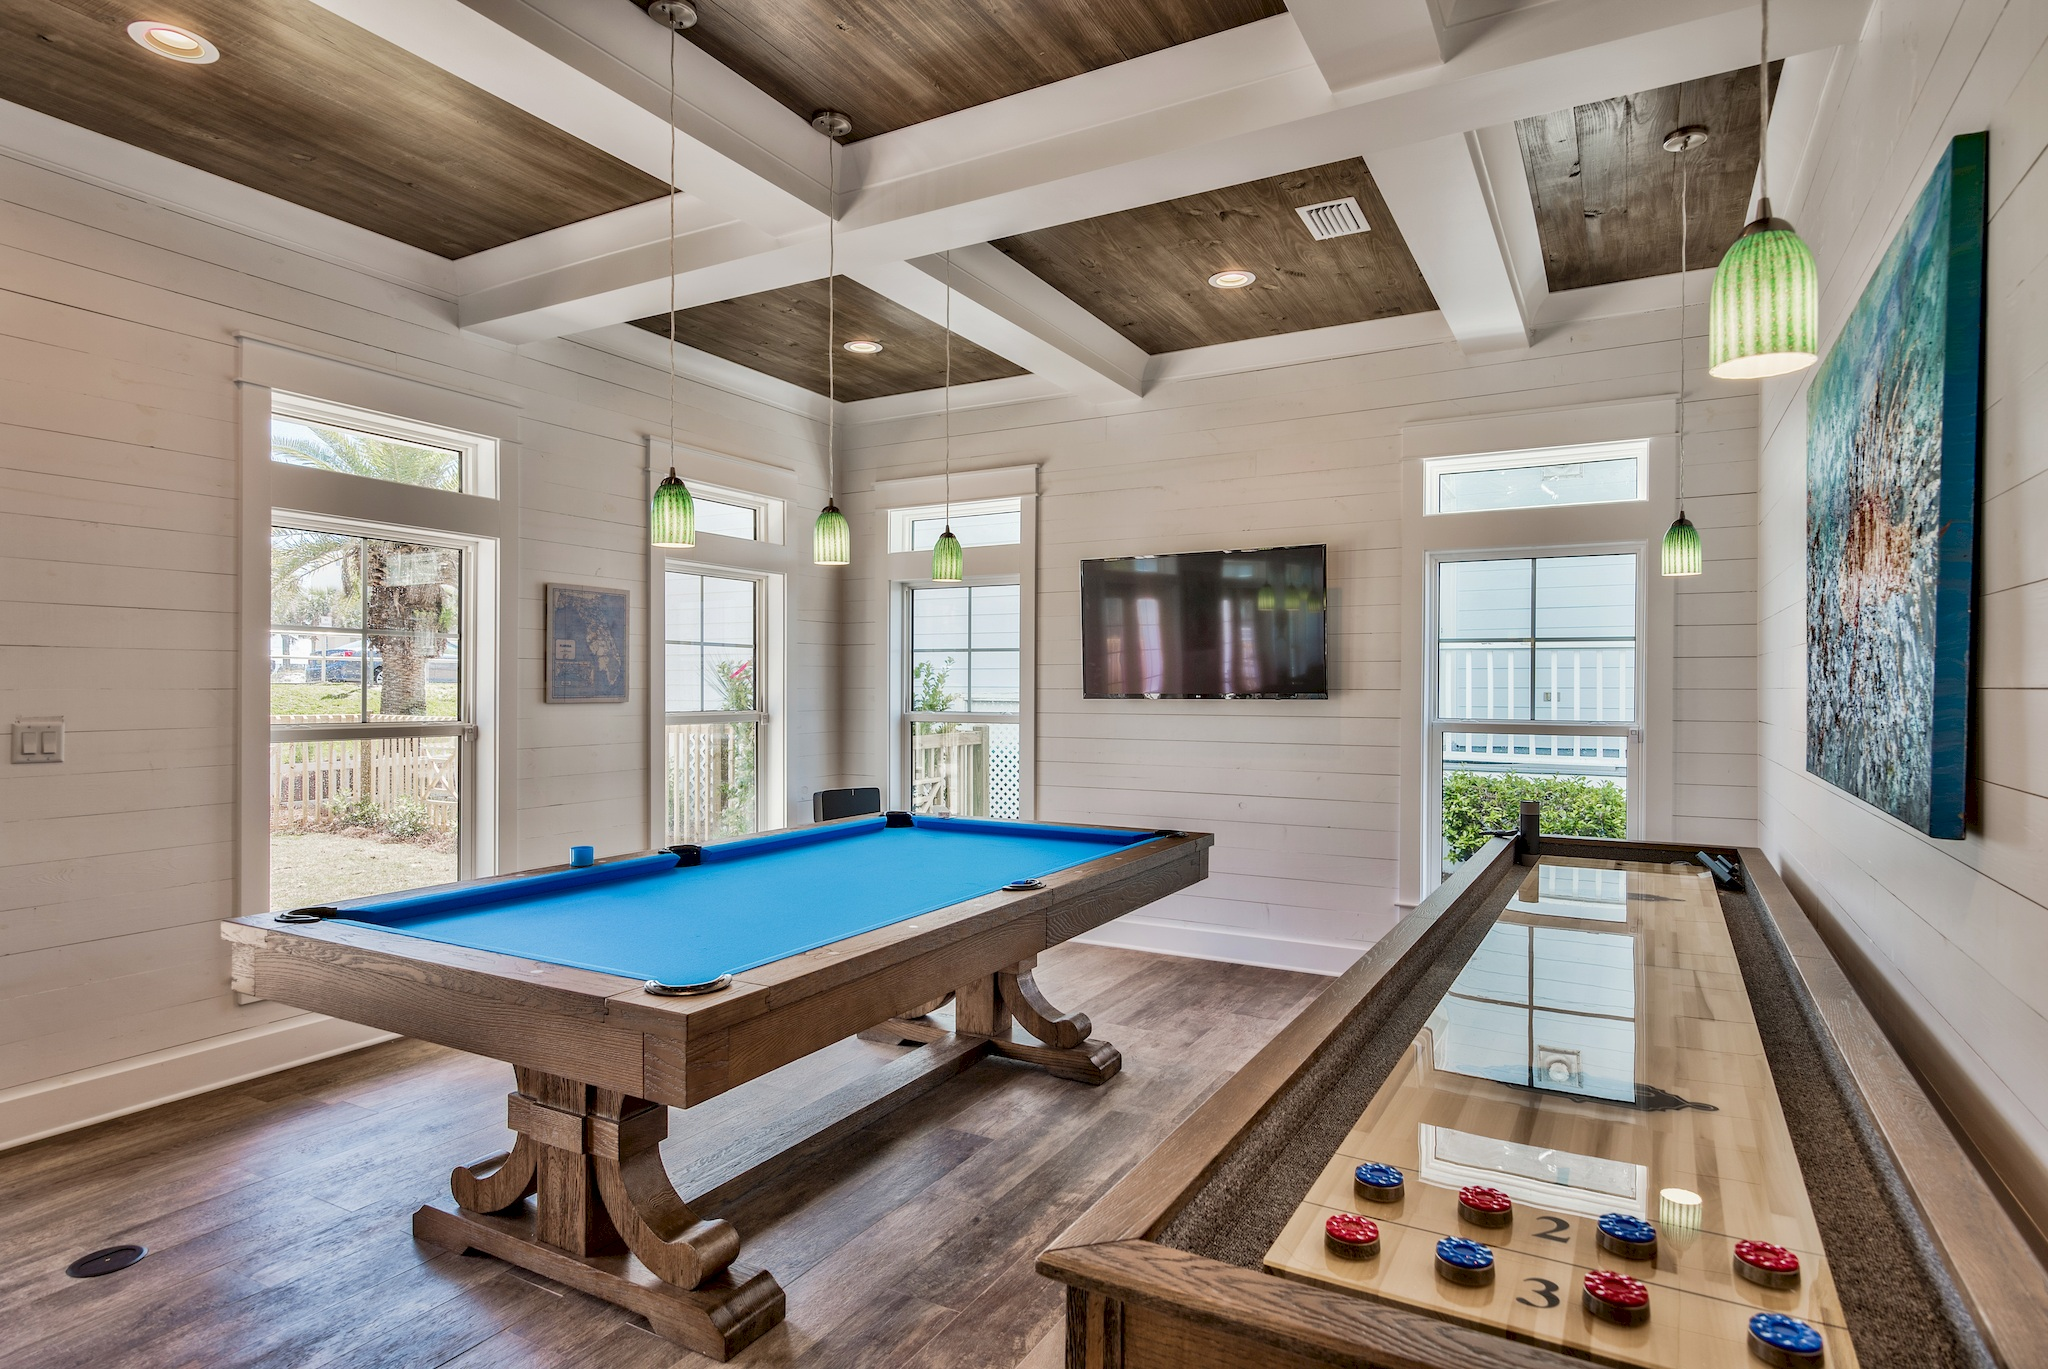 Chill Pill pool table and shuffleboard for gathering your gr